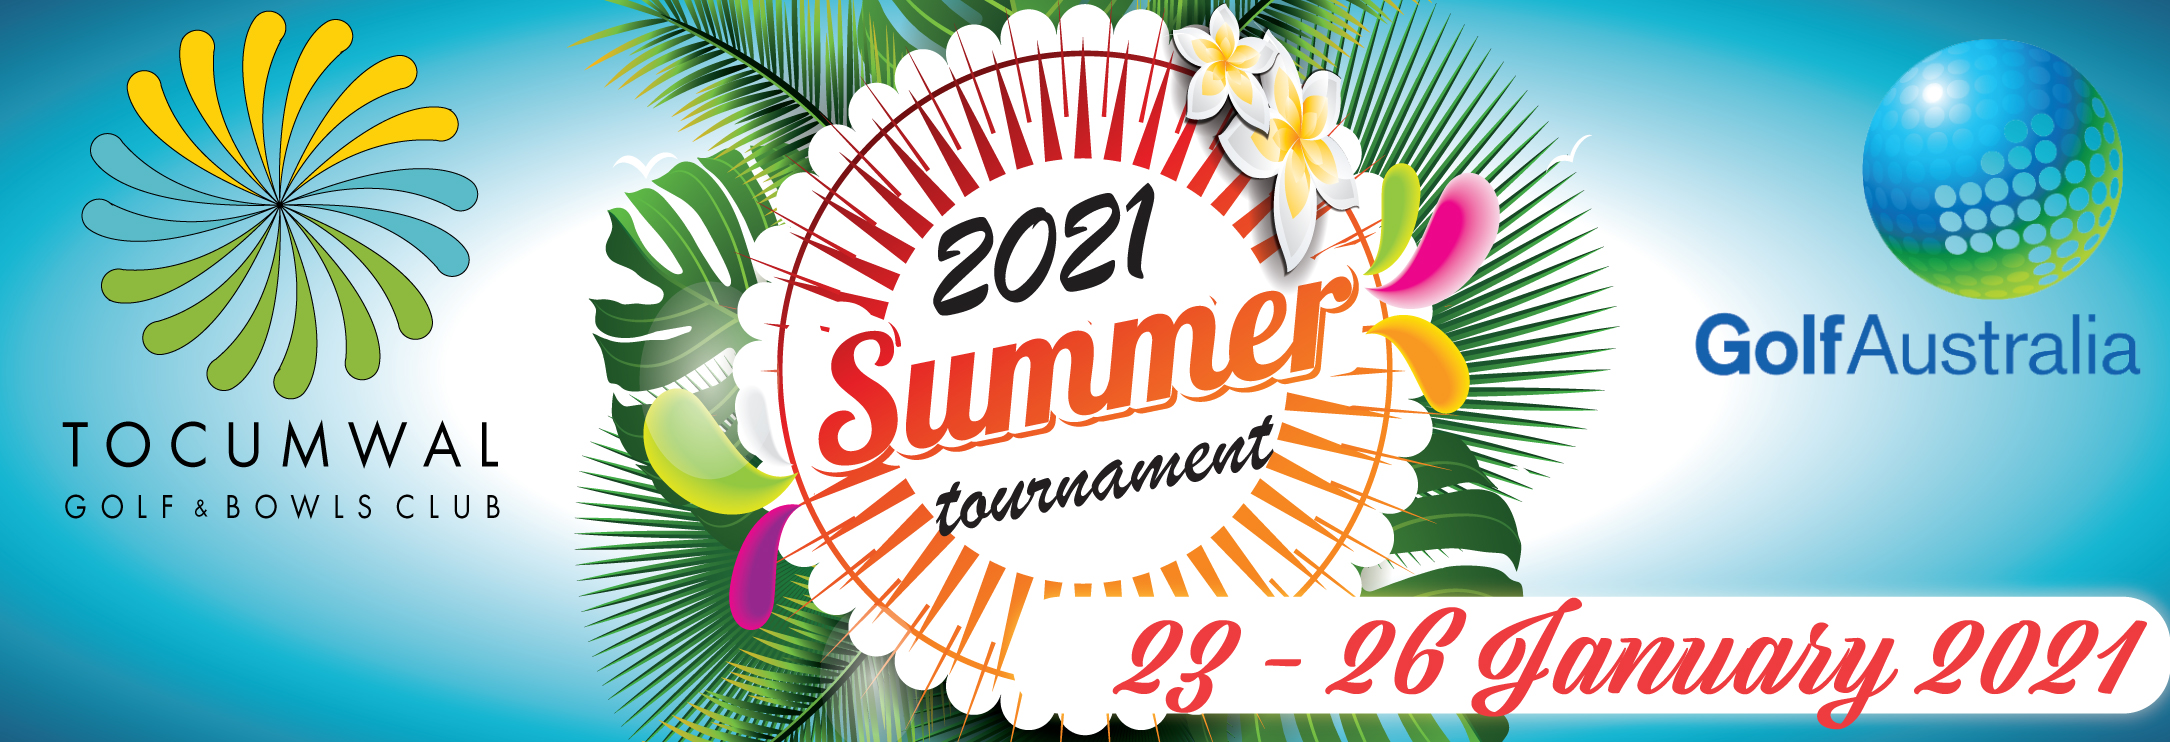 Summer-Tournament-Banner-2021